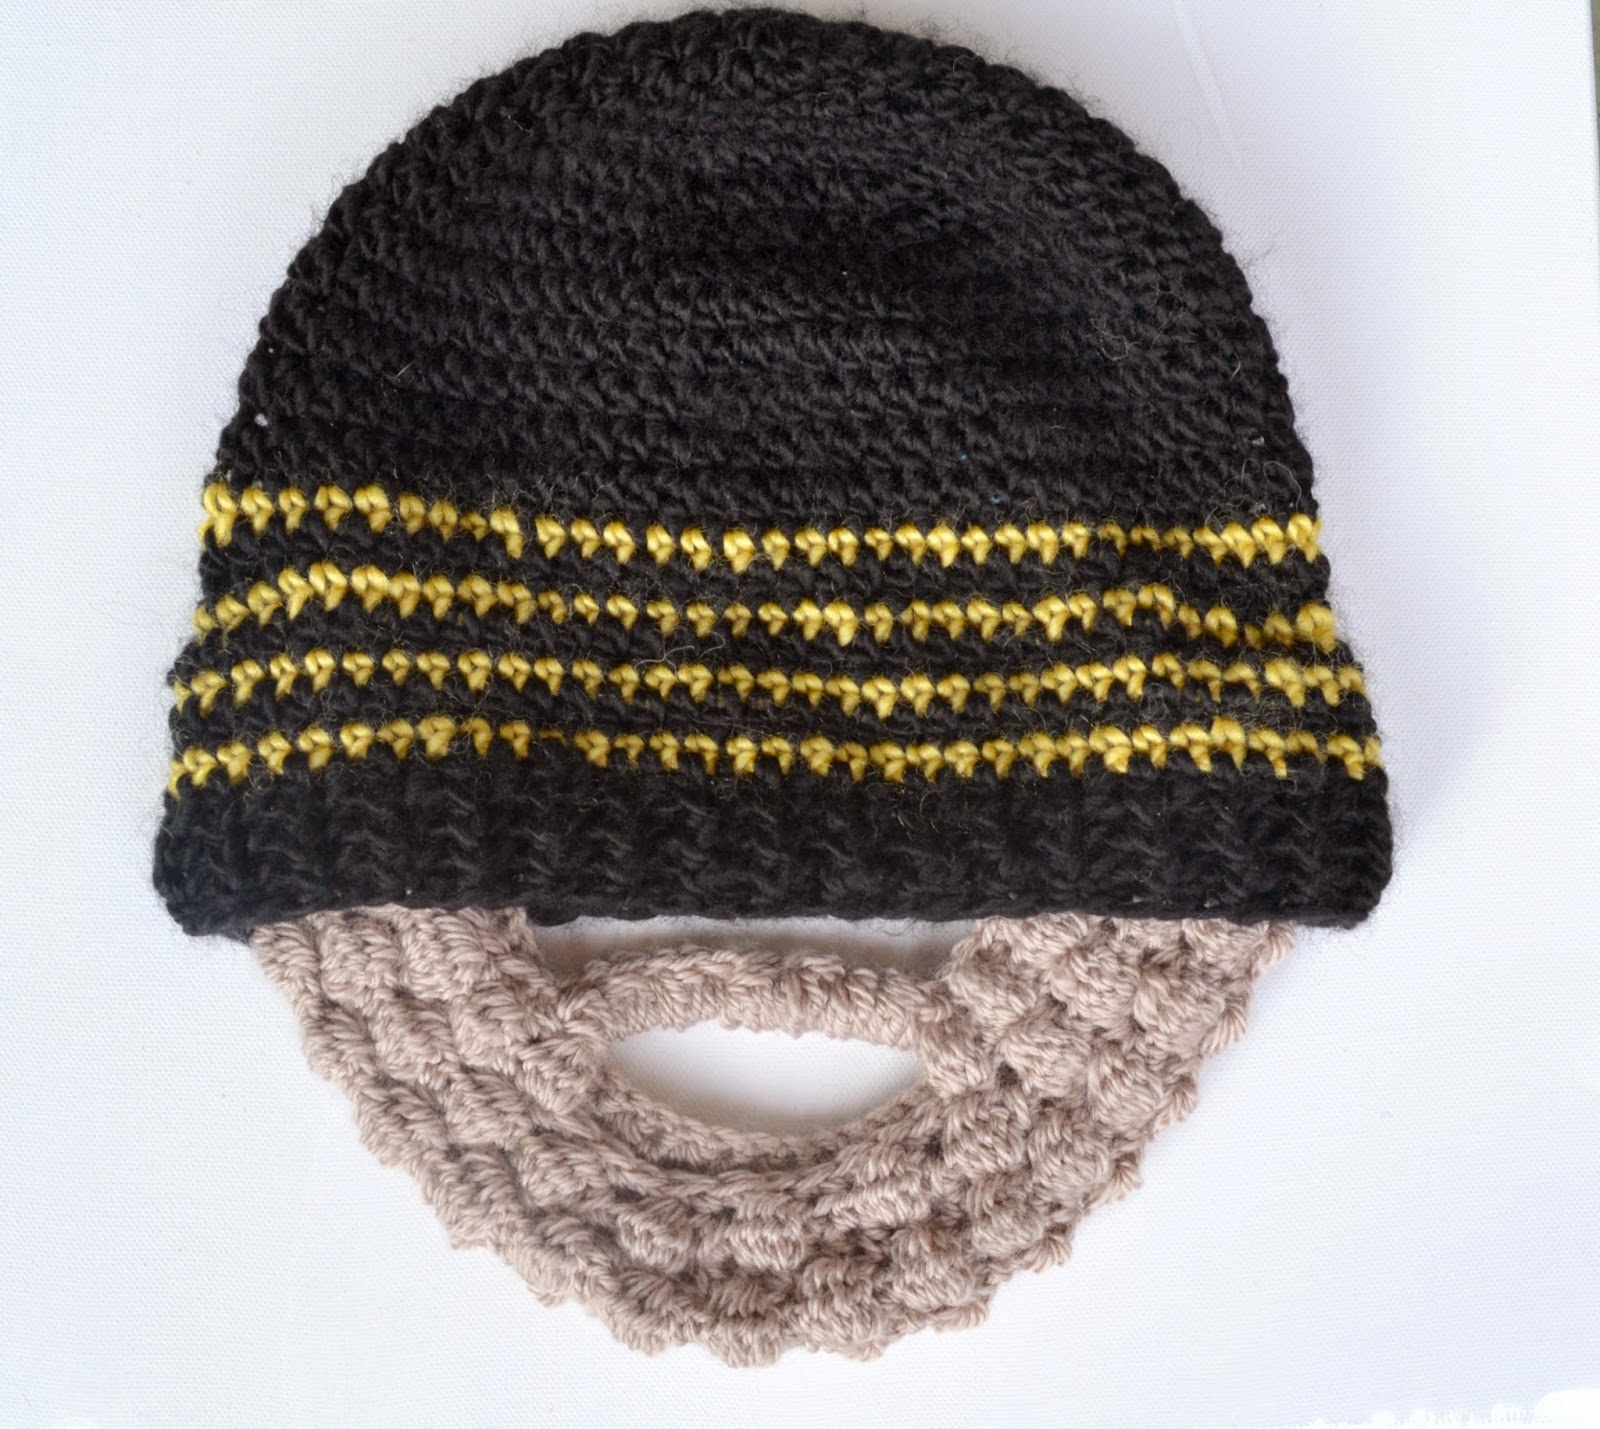 Crochet Pattern For Mens Beanie With Beard : Granny Square Flair